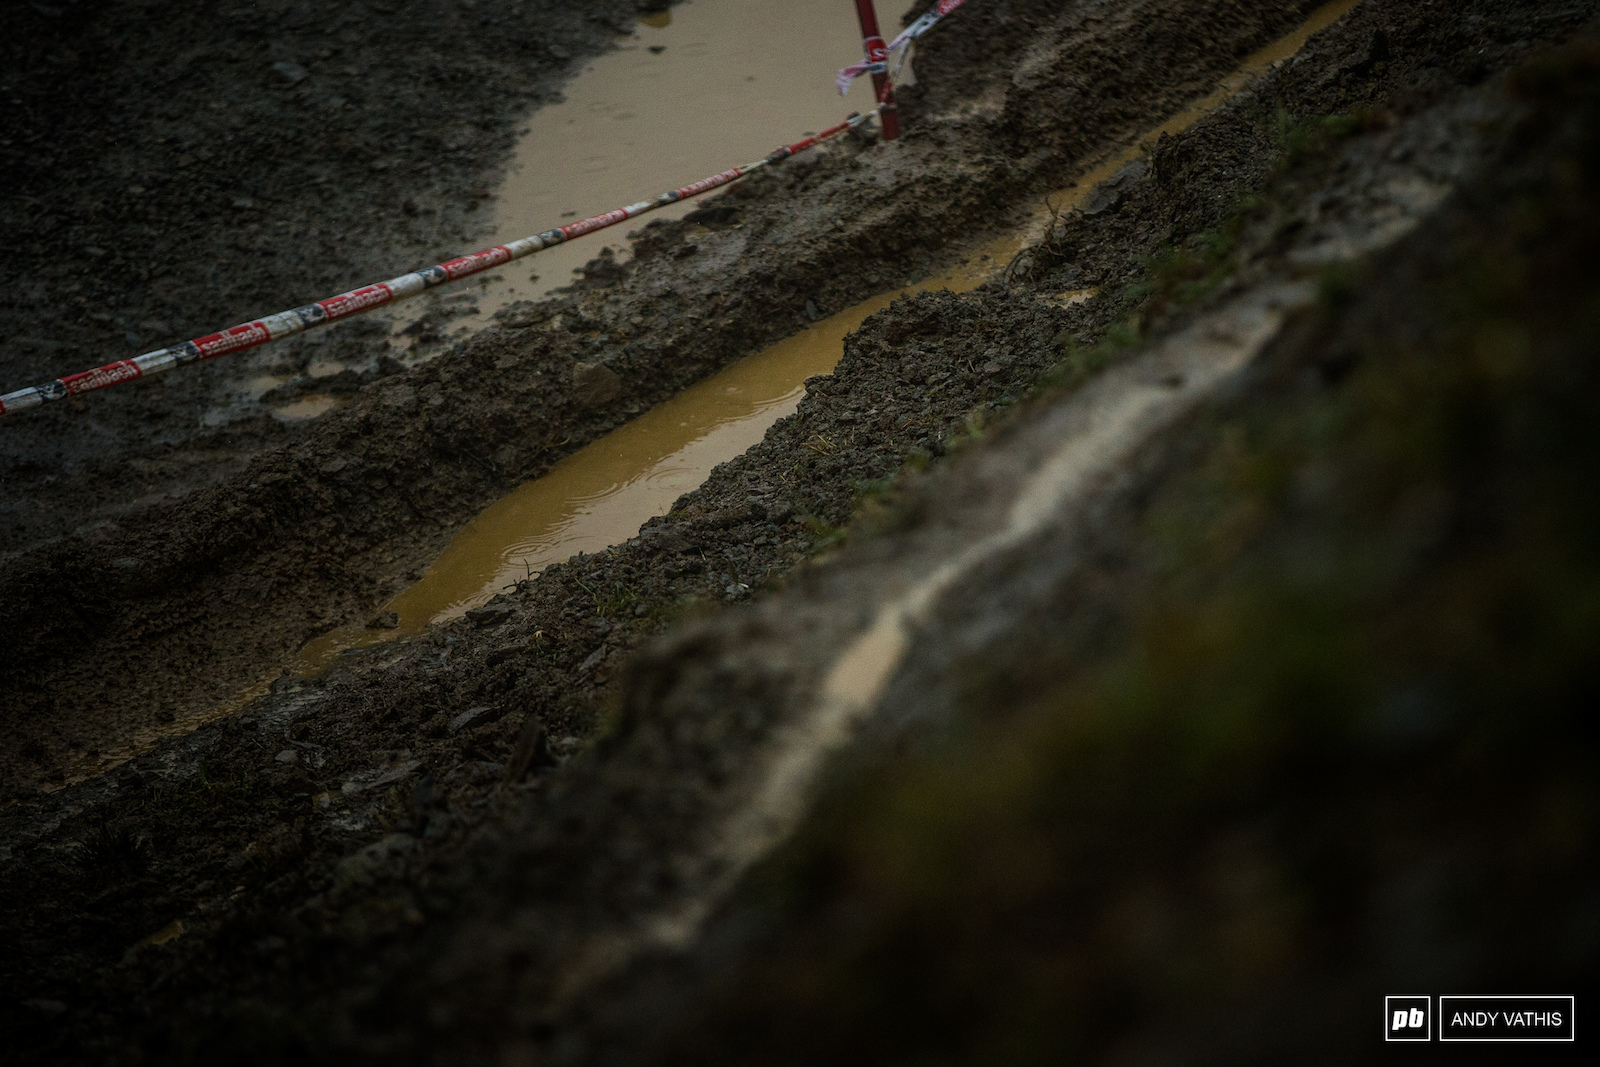 It goes without saying that the track is annihilated after all the weather we ve had.